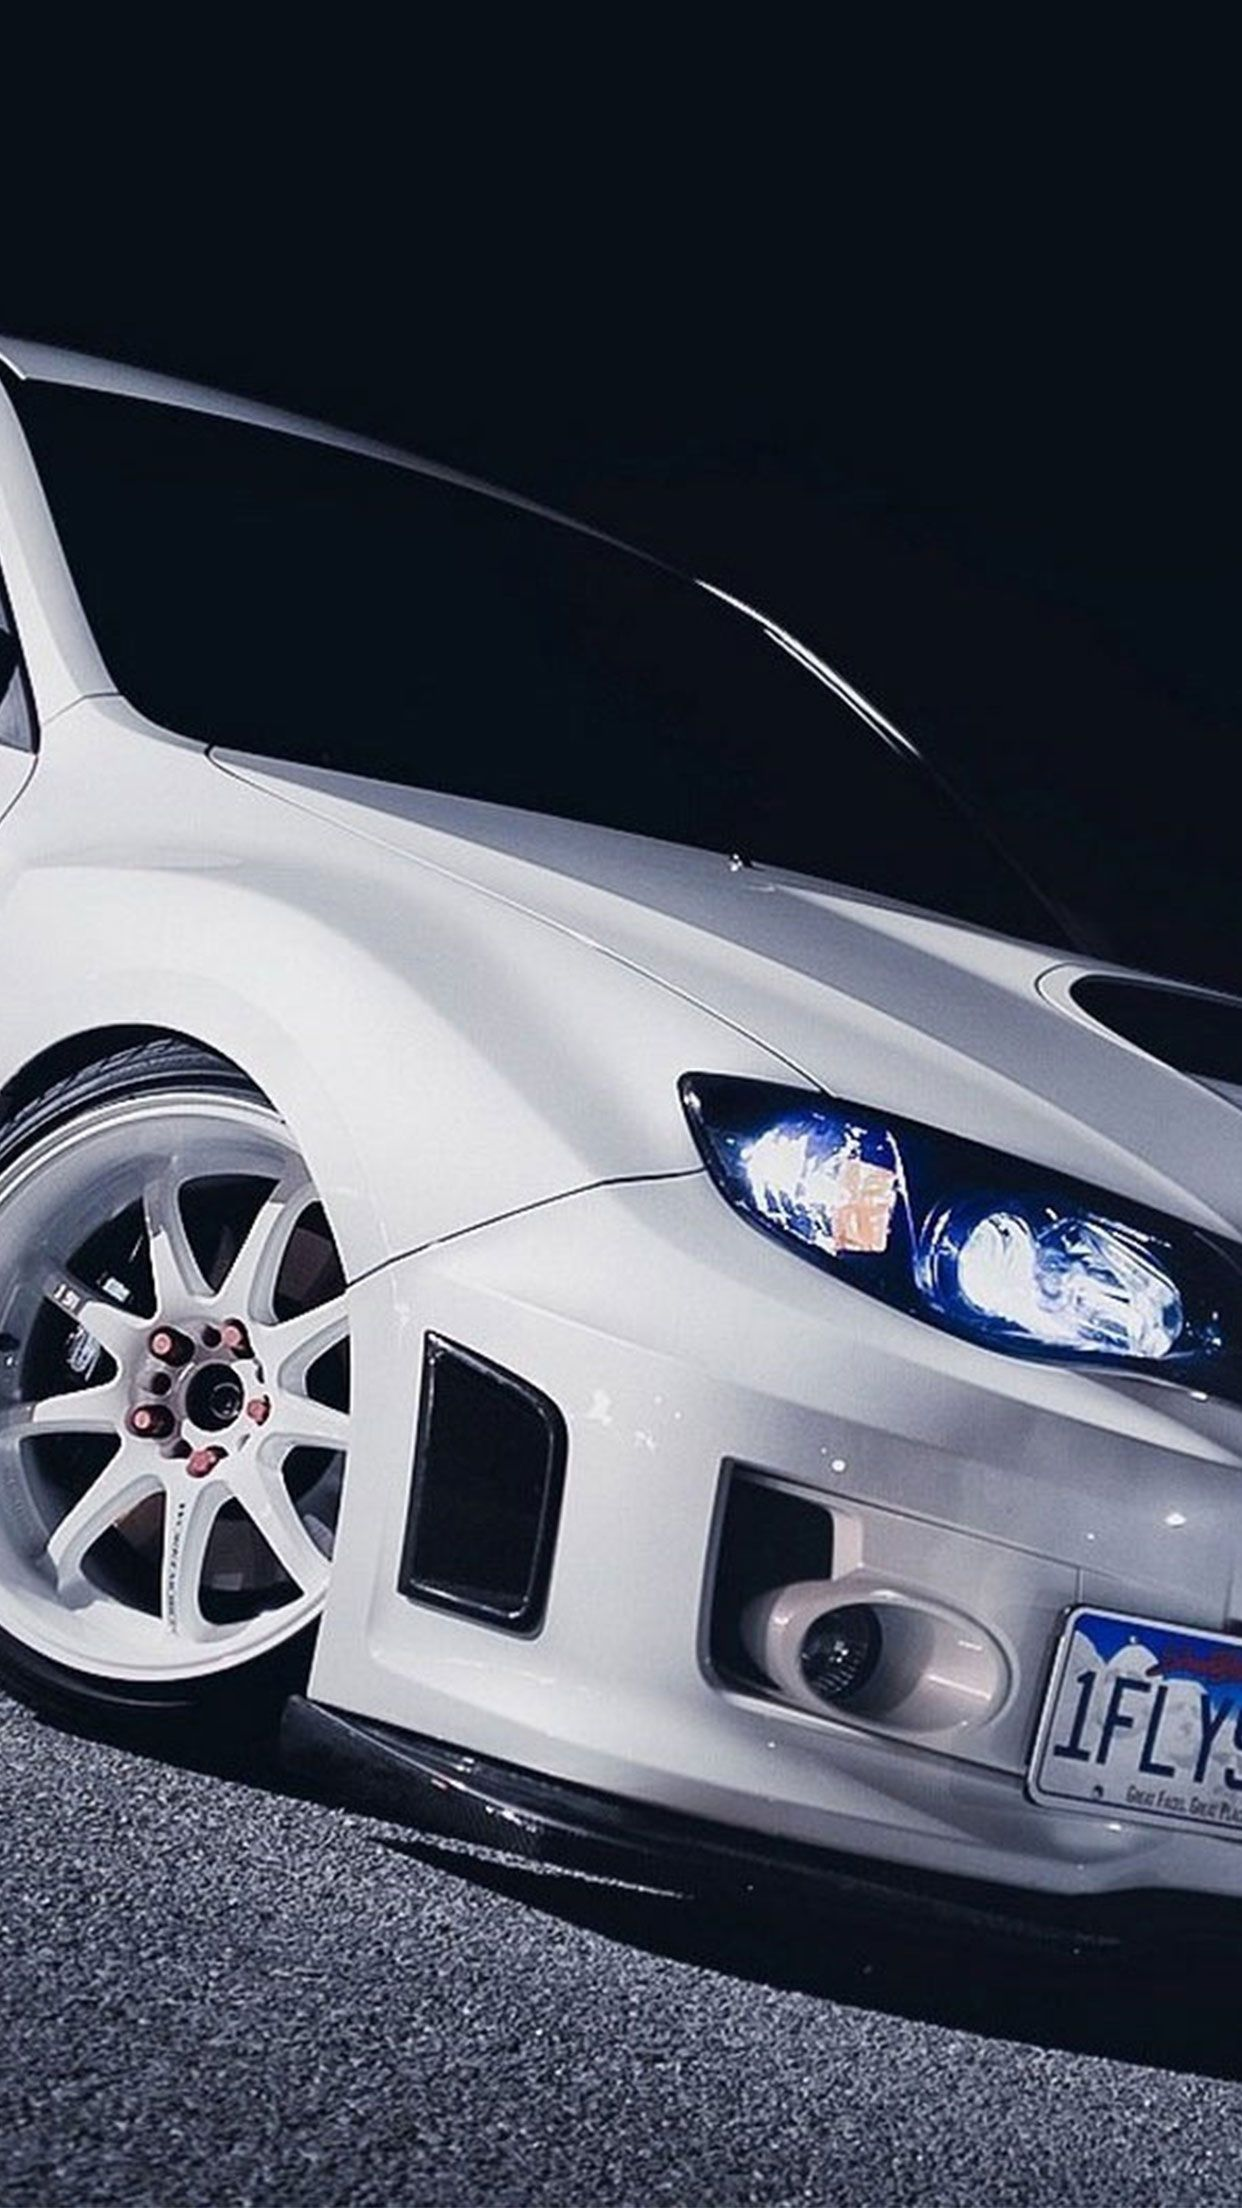 Subaru White Car Wallpaper For Iphone Android Subaru